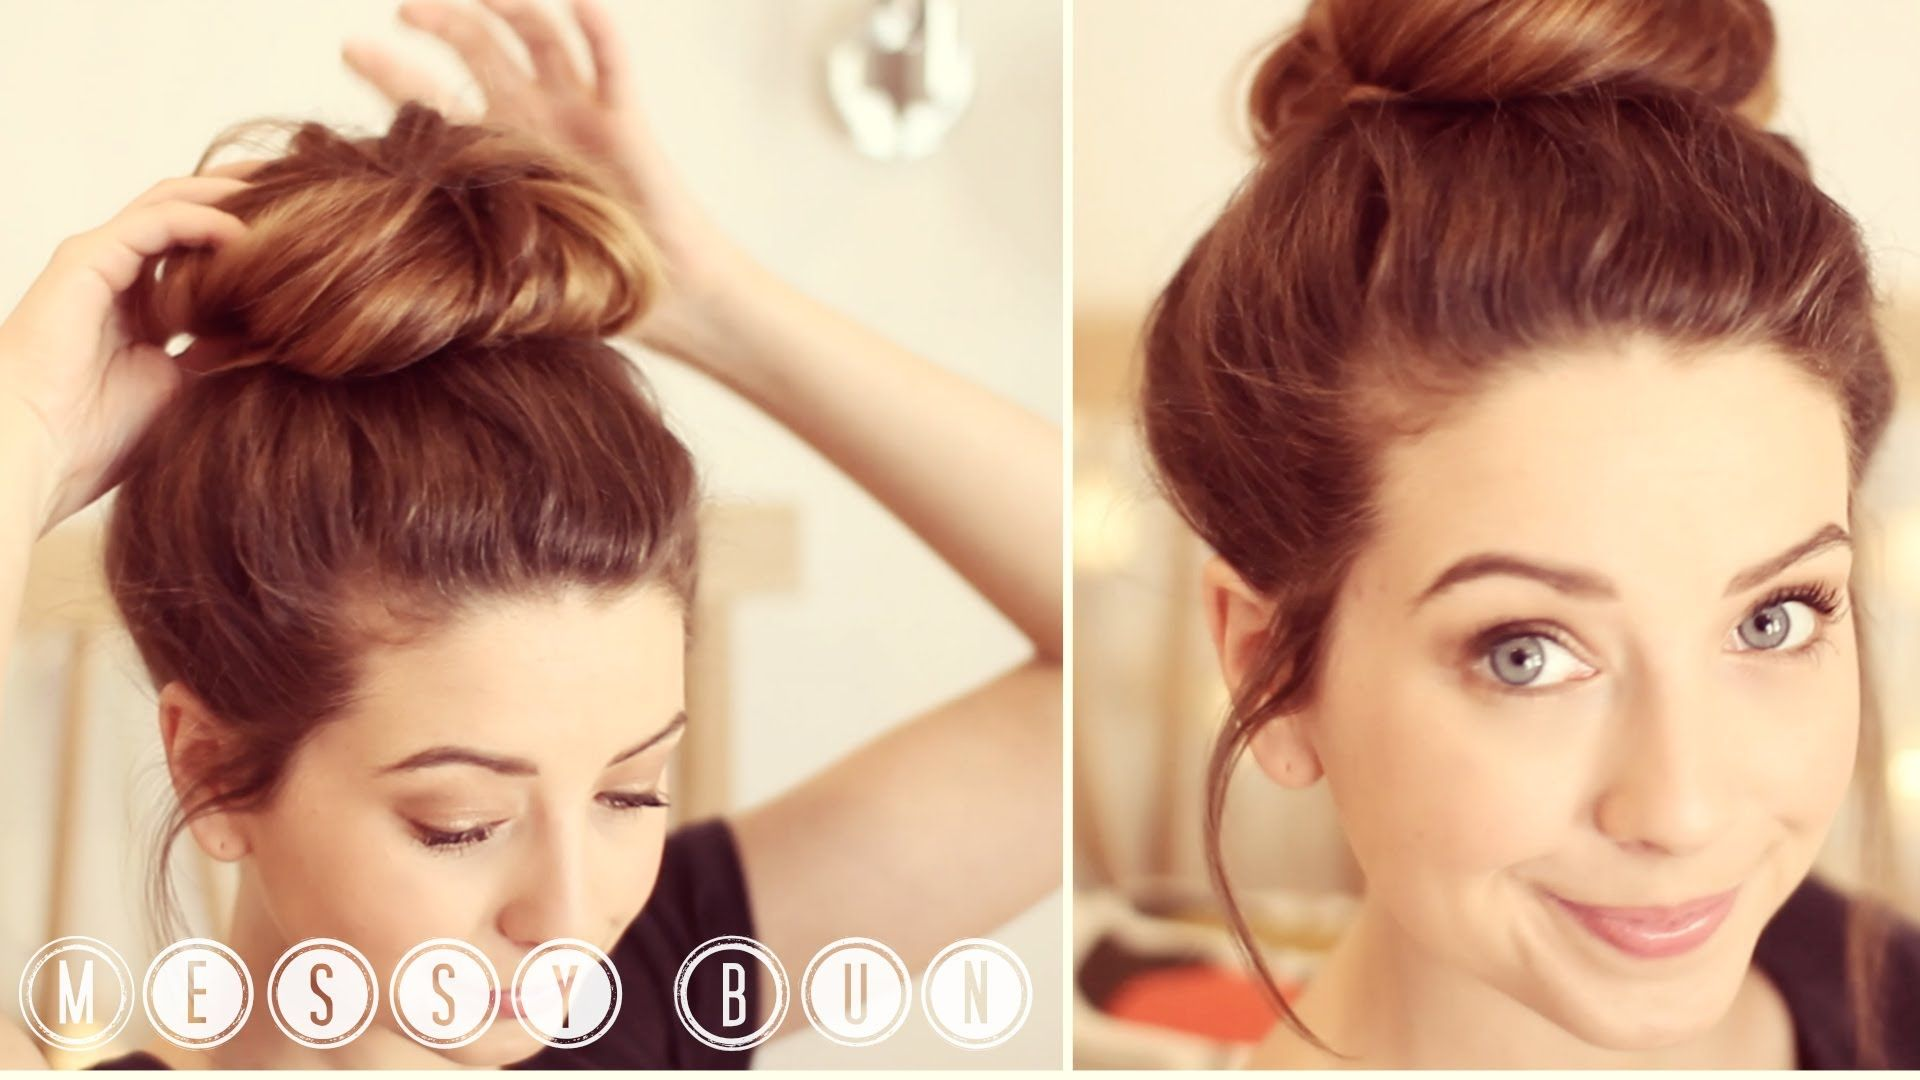 What Hair Style Is Right For Me: How To: Messy Bun By Zoella Messy Bun In Less Than 5